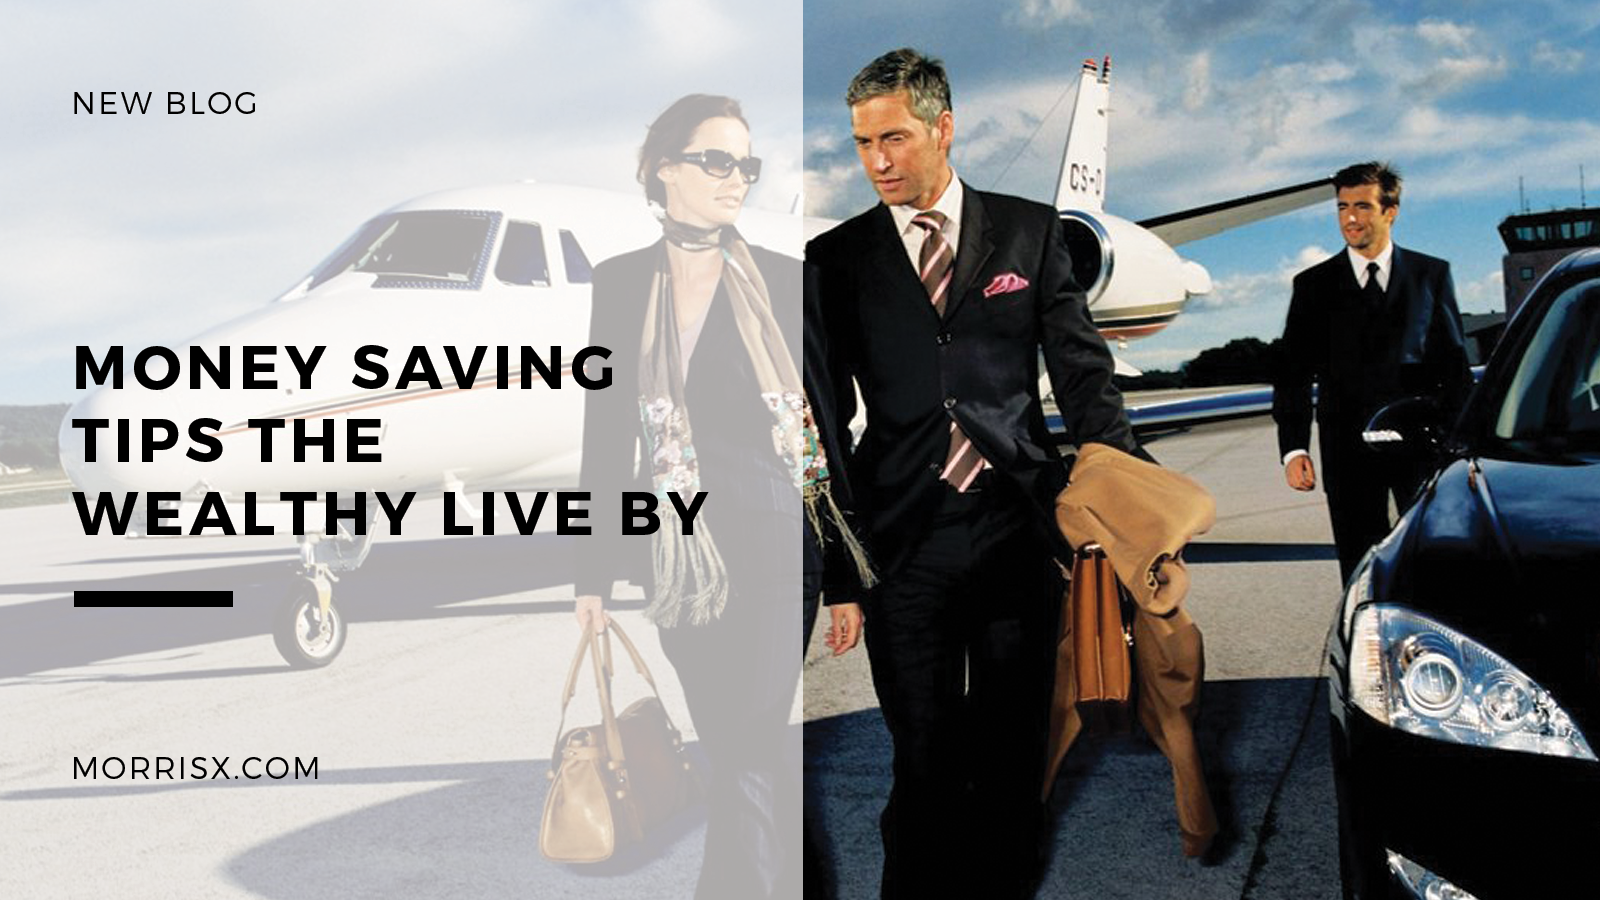 Money Saving Tips The Wealthy Live By